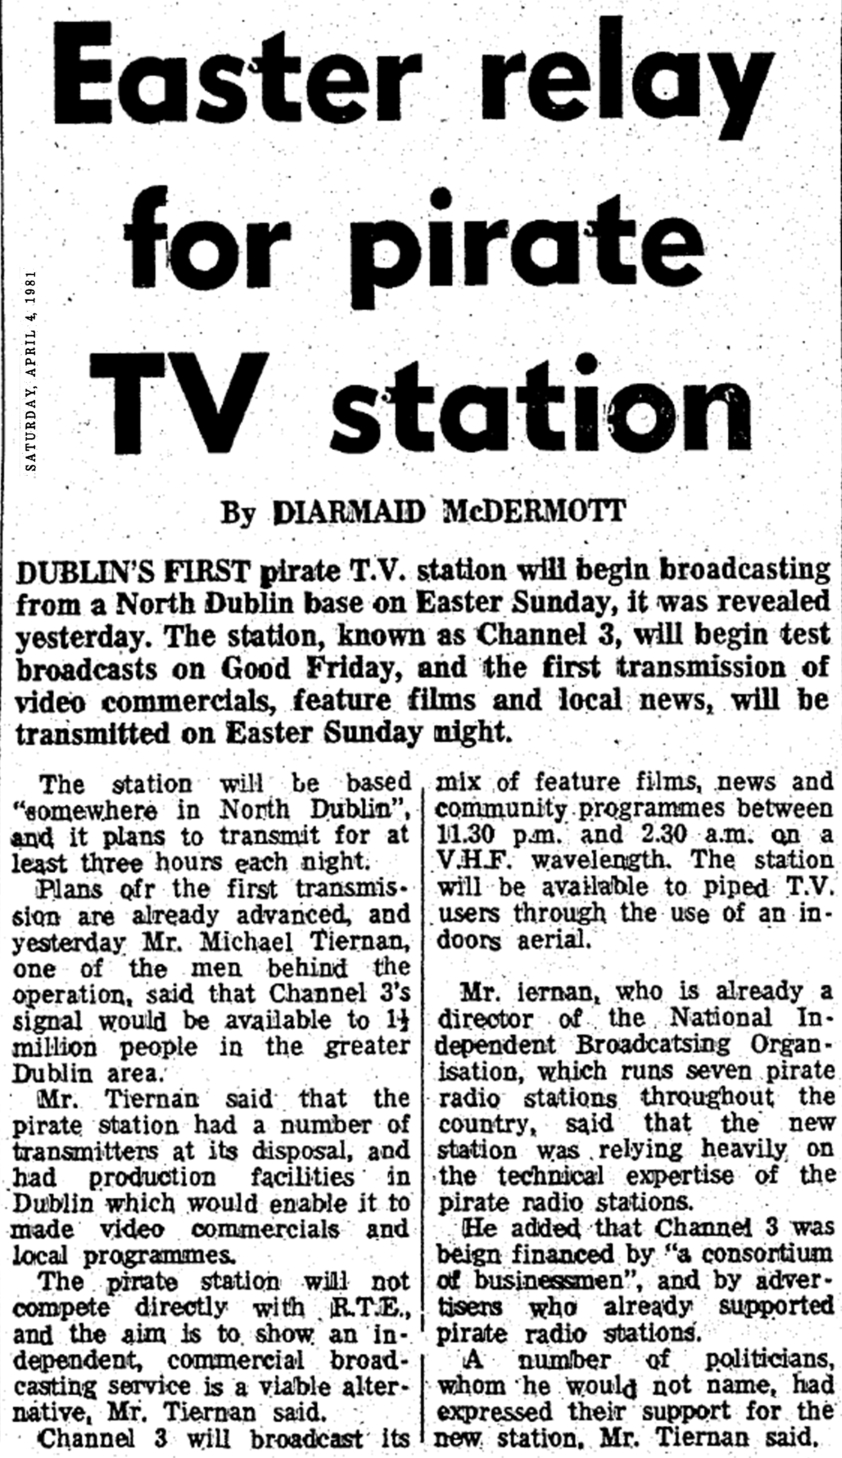 Easter relay for pirate TV station was a newspaper headline from the Irish Press dated April 4th 1981